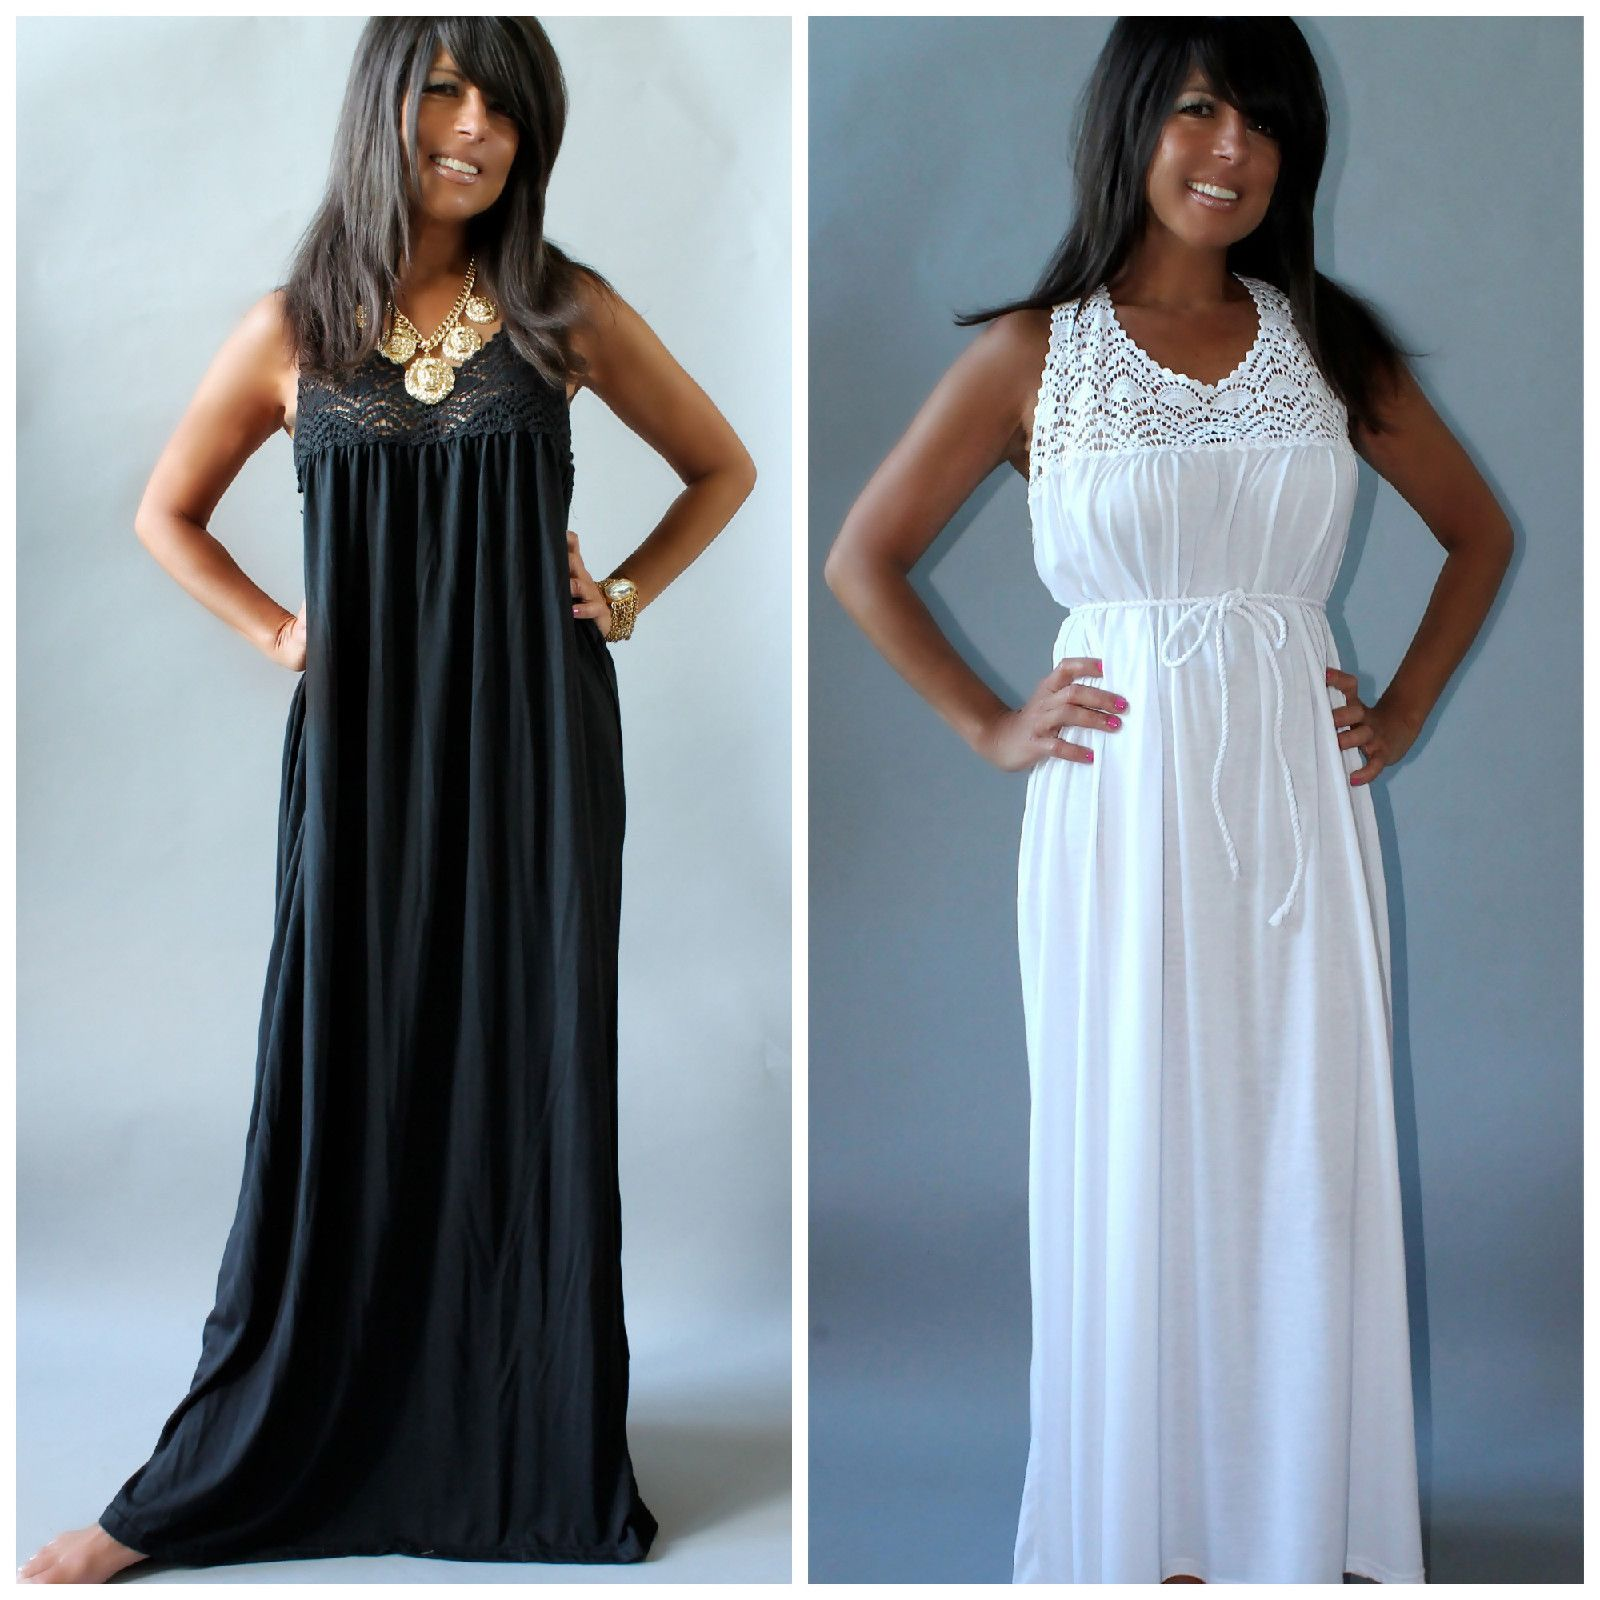 Crochet lace maxi dress black or white summer beach cruise plus size